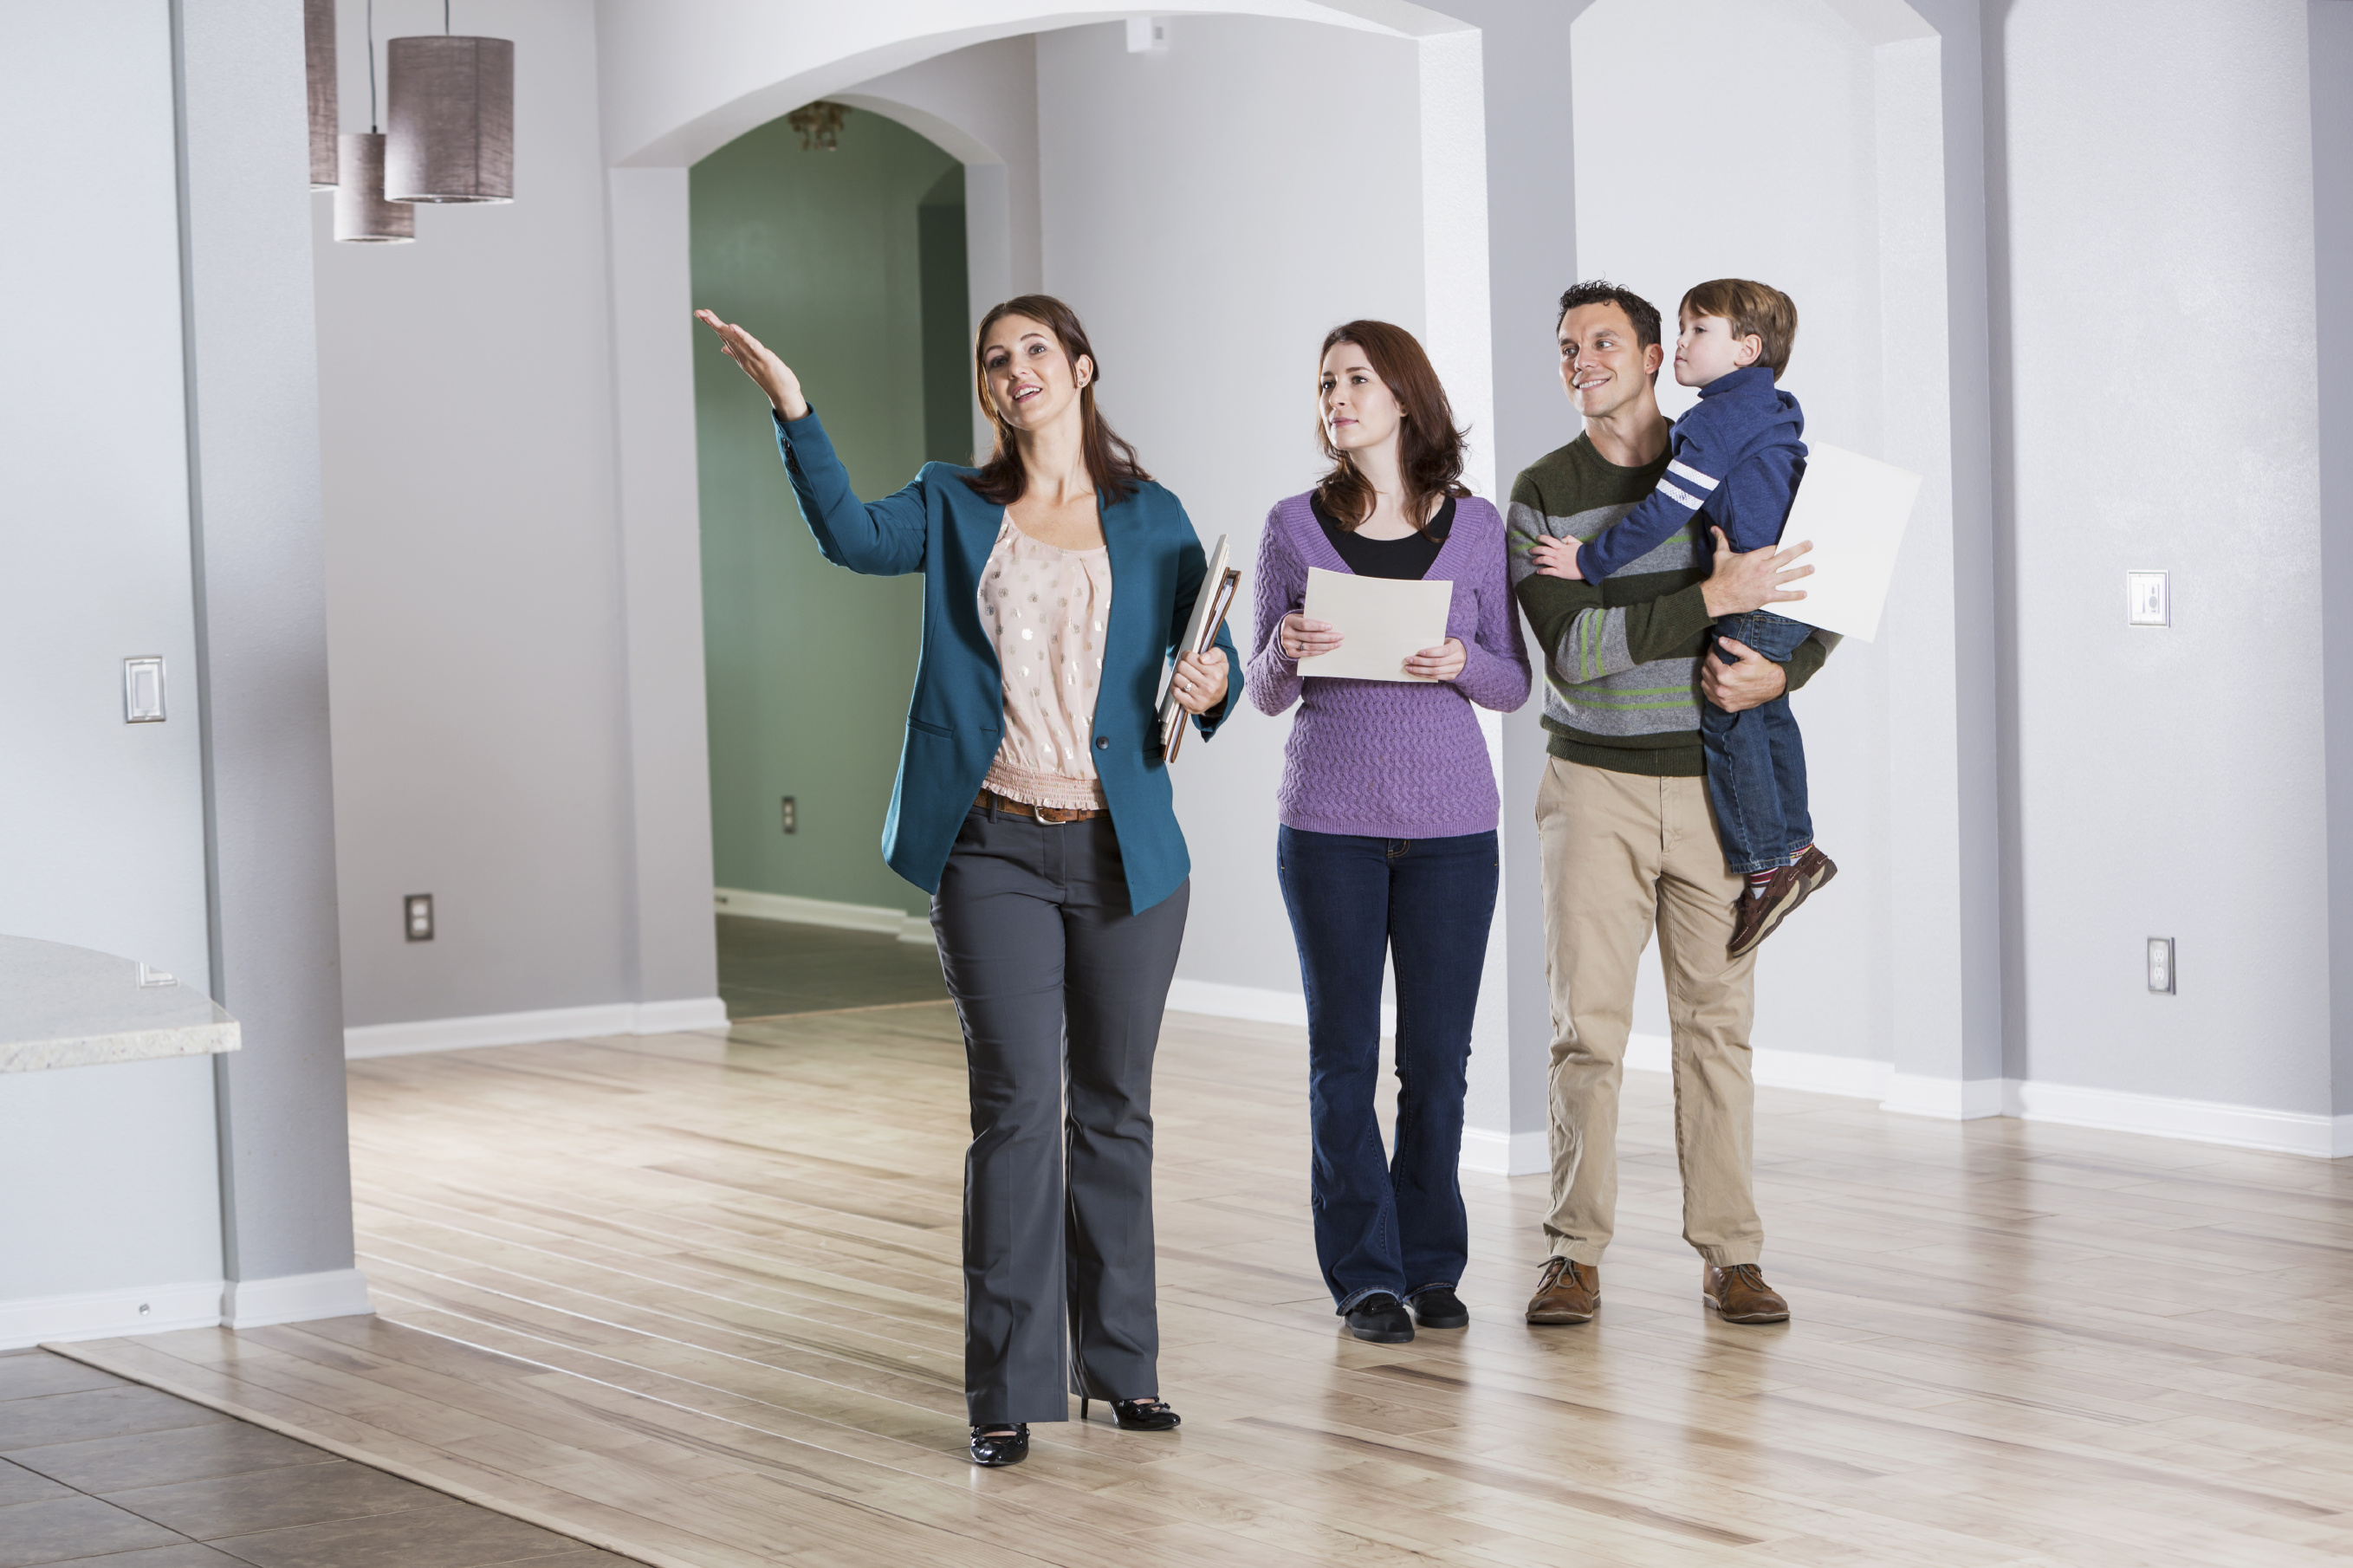 Being a real estate agent is a great part-time option for stay-at-home moms.